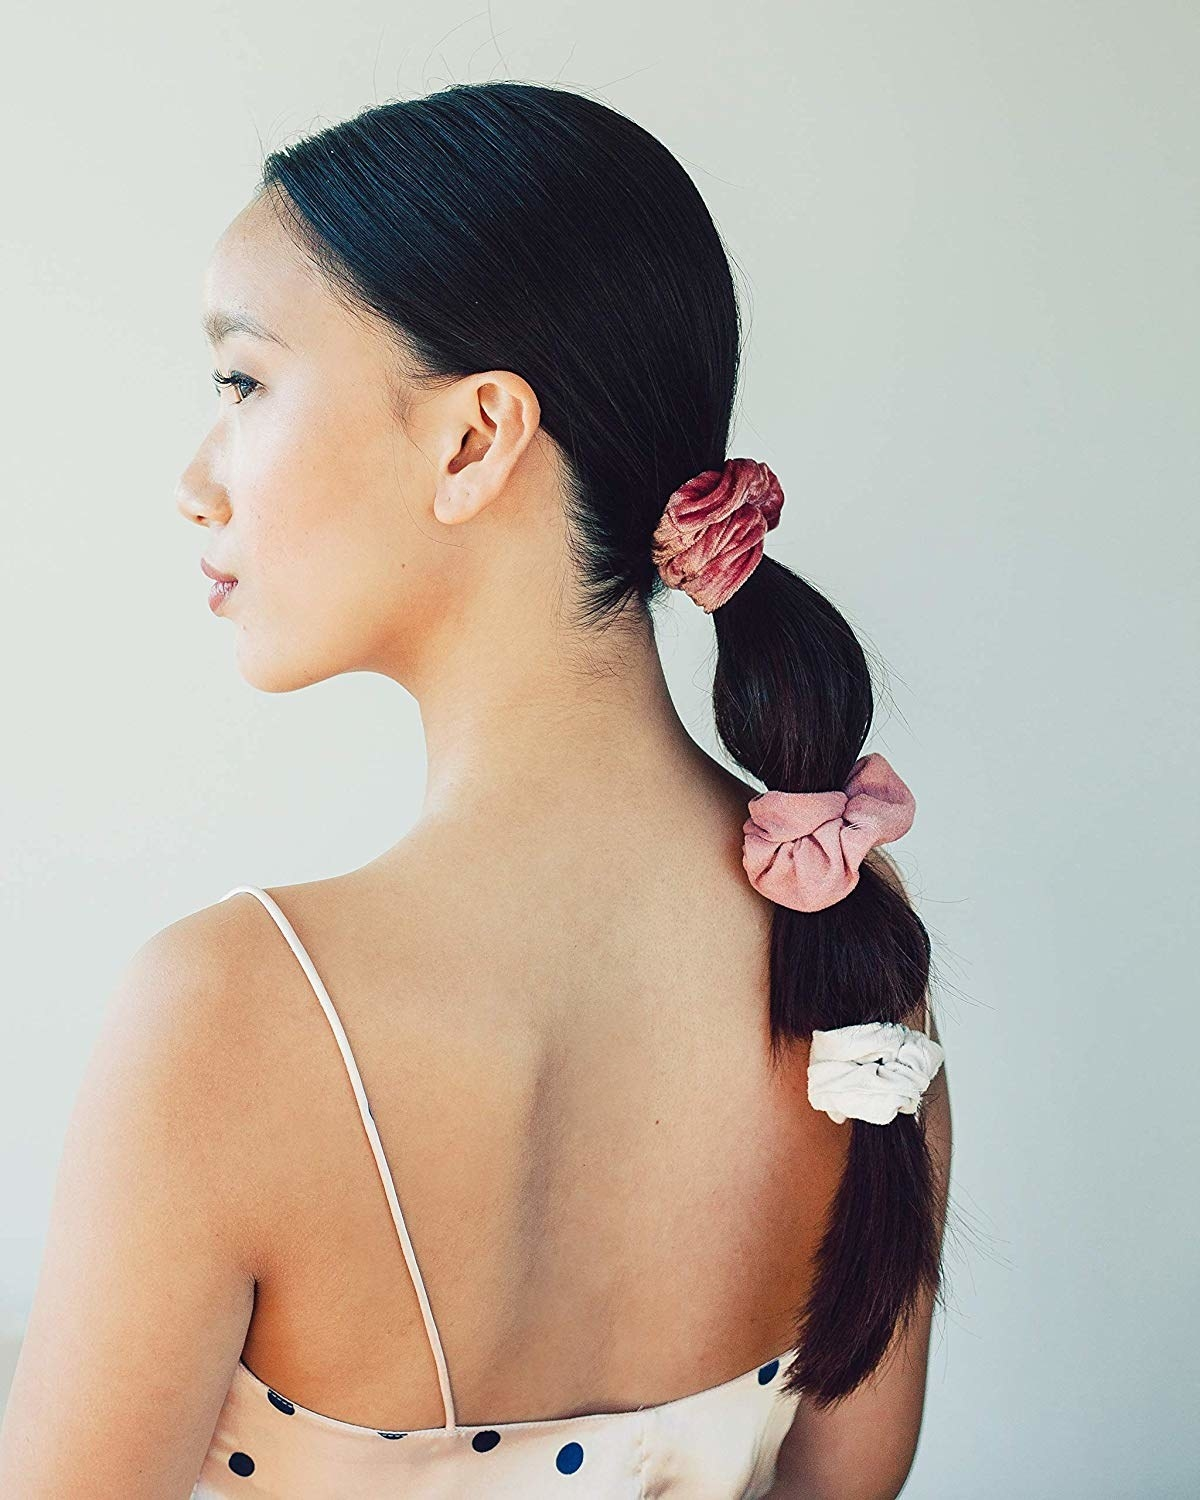 Model with a long ponytail with three scrunchies along the length in dark pink, light pink, and white